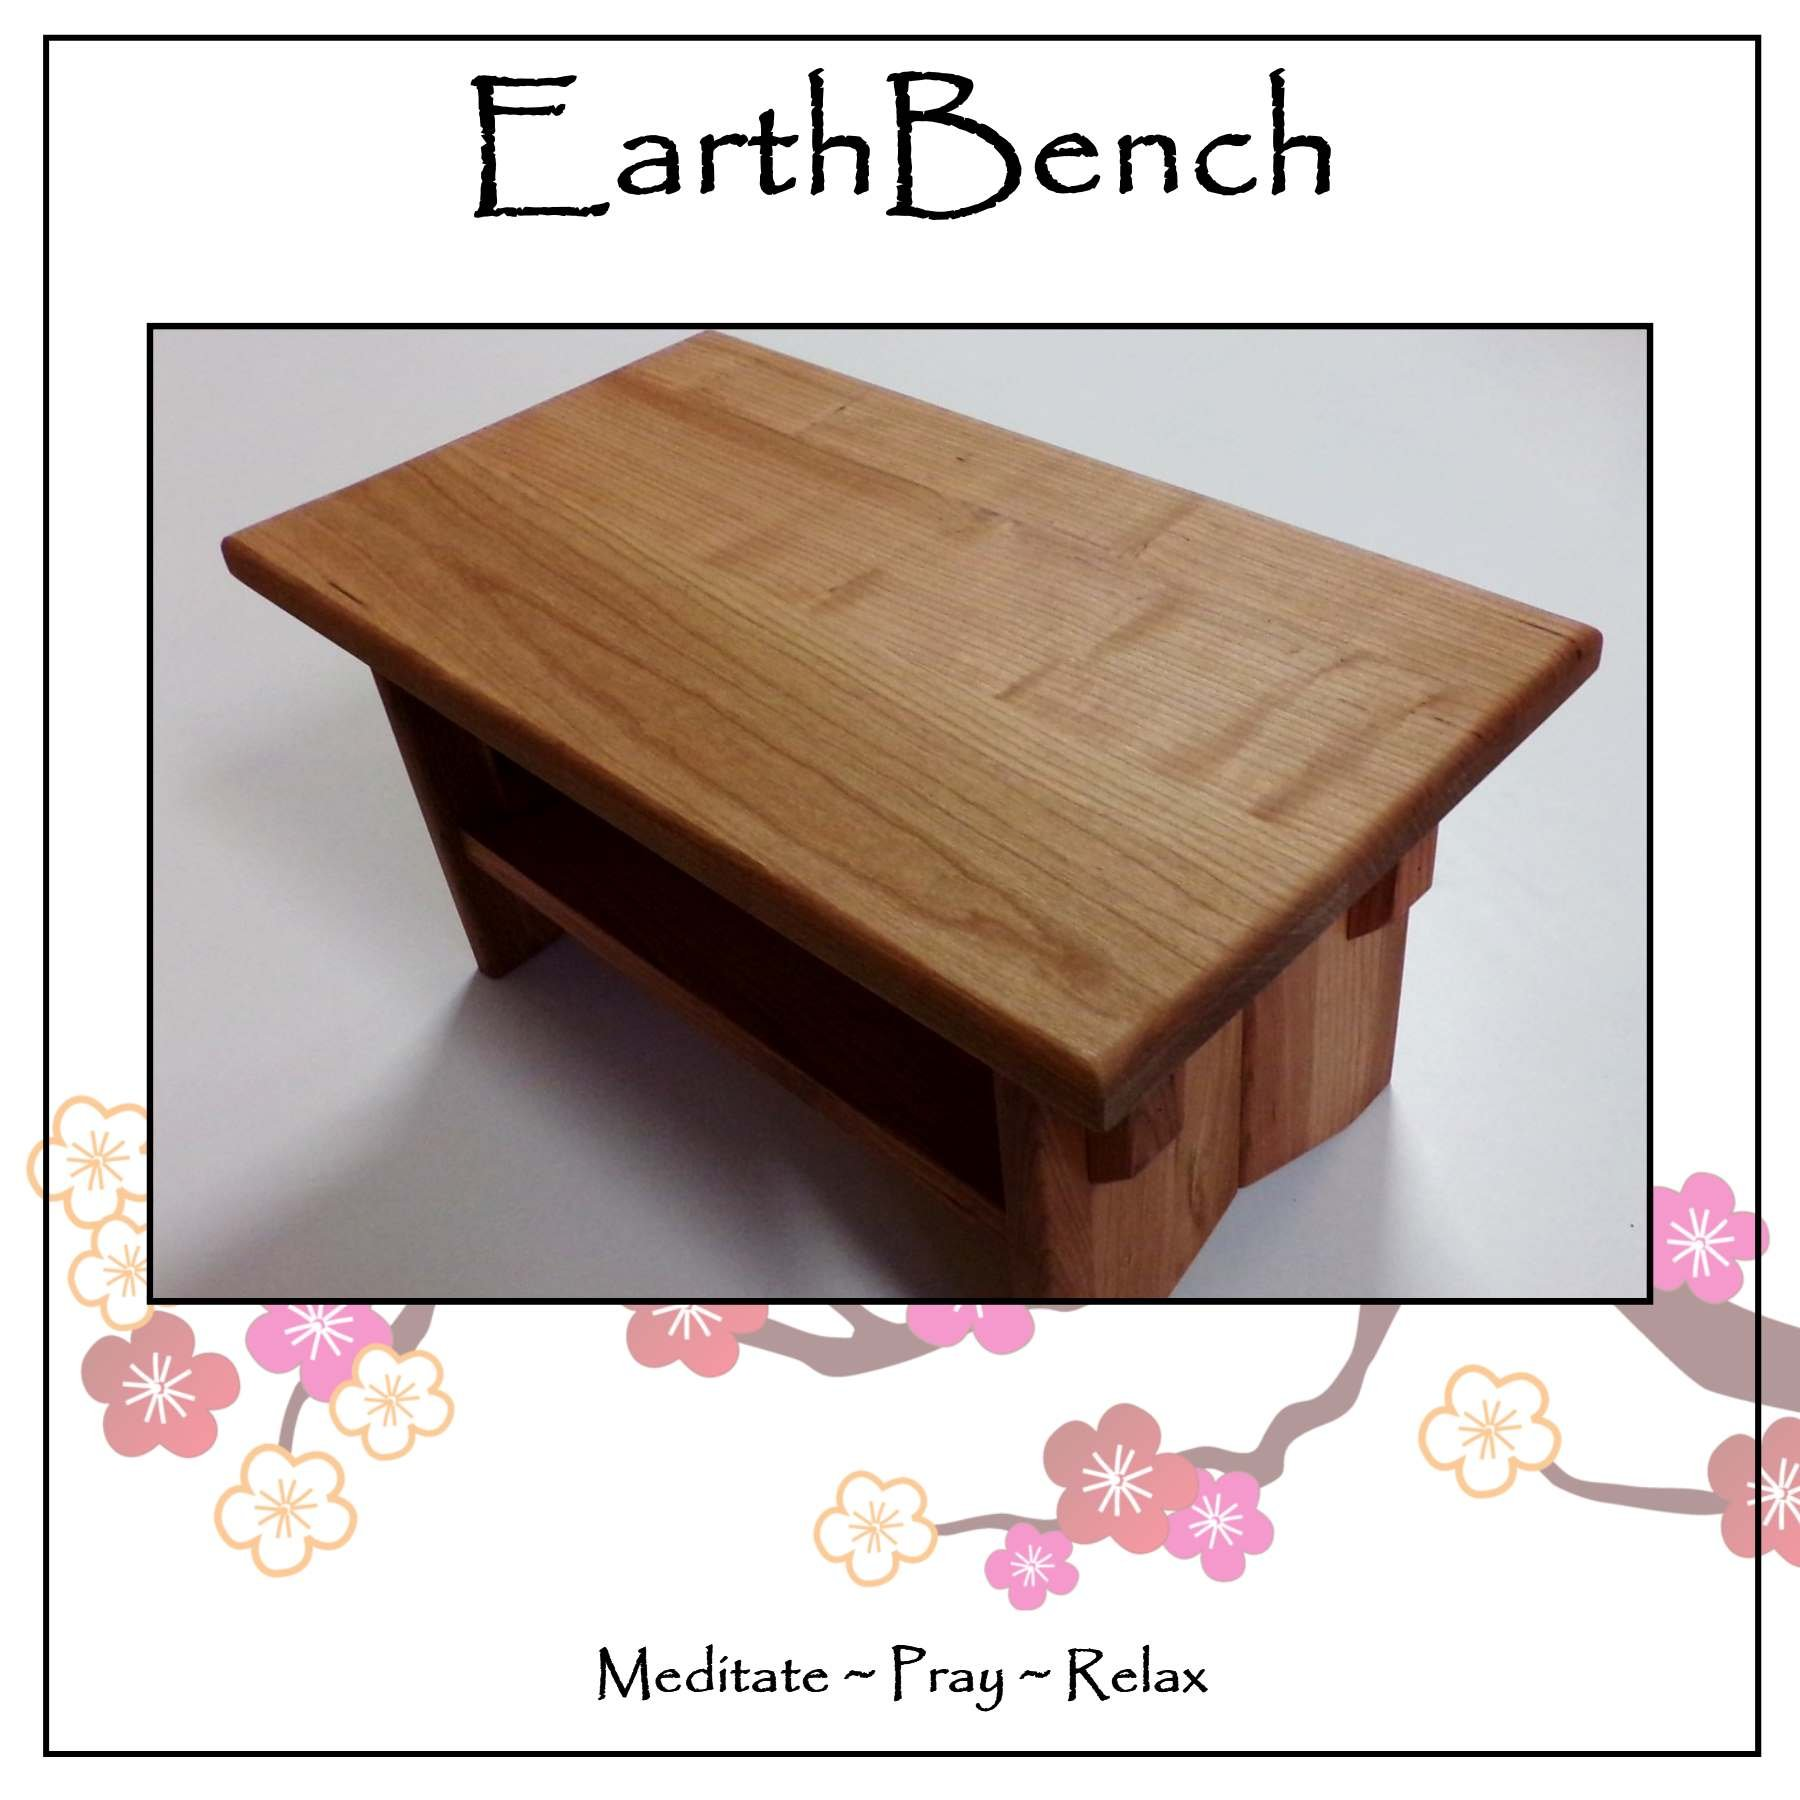 Deluxe Personal Altar with Shelf - EarthBench - Solid CHERRY WOOD Construction for Meditation, Prayer, or Contemplative Studies.